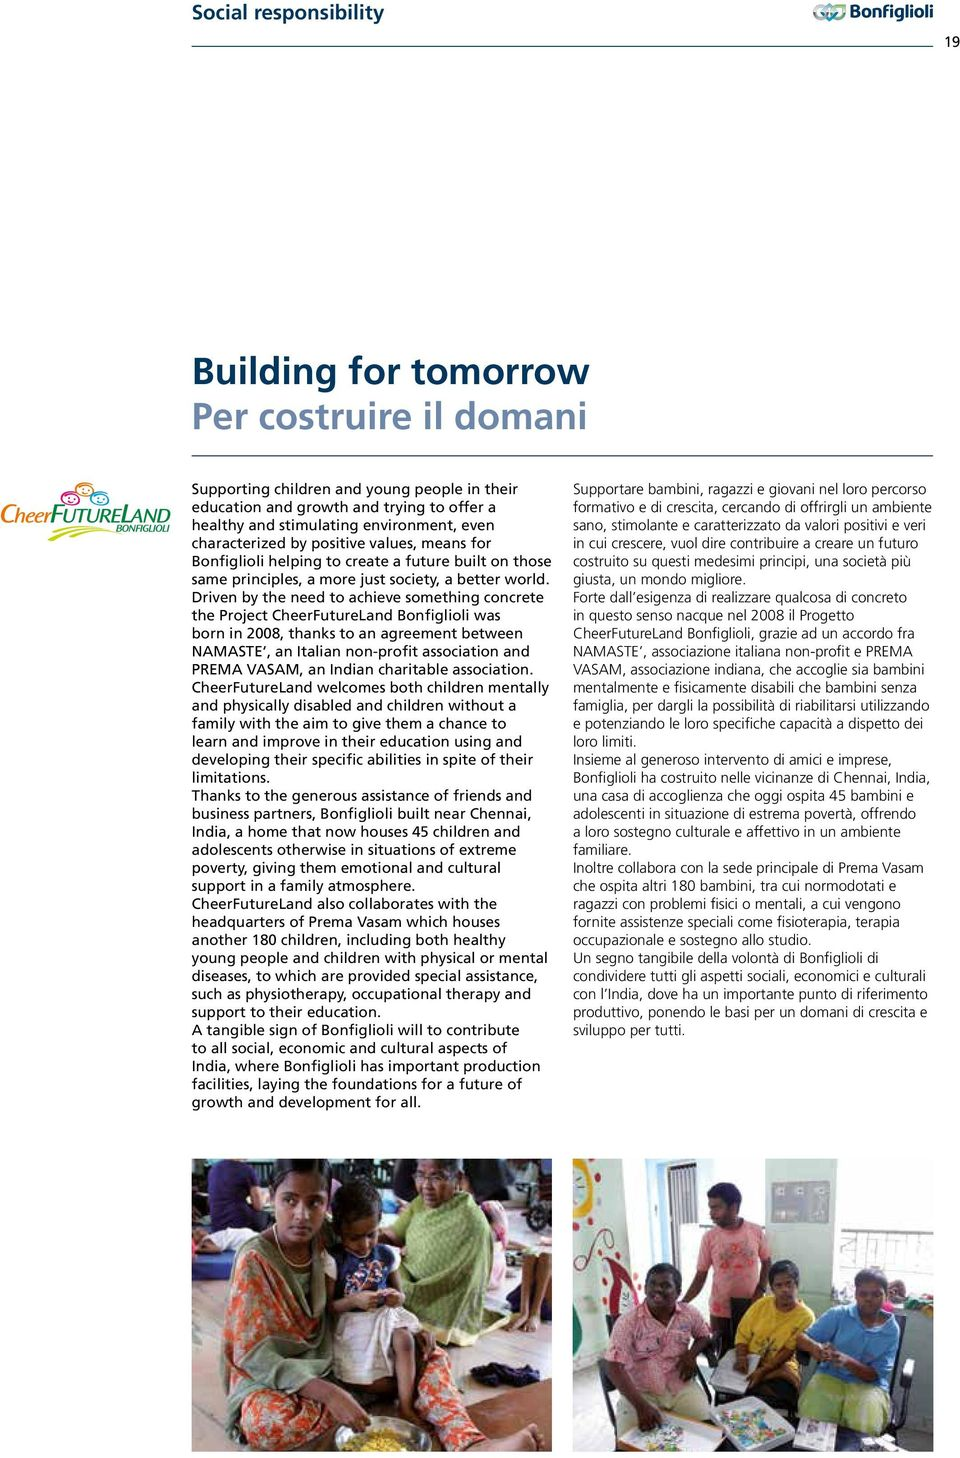 Driven by the need to achieve something concrete the Project CheerFutureLand Bonfiglioli was born in 2008, thanks to an agreement between NAMASTE, an Italian non-profit association and PREMA VASAM,